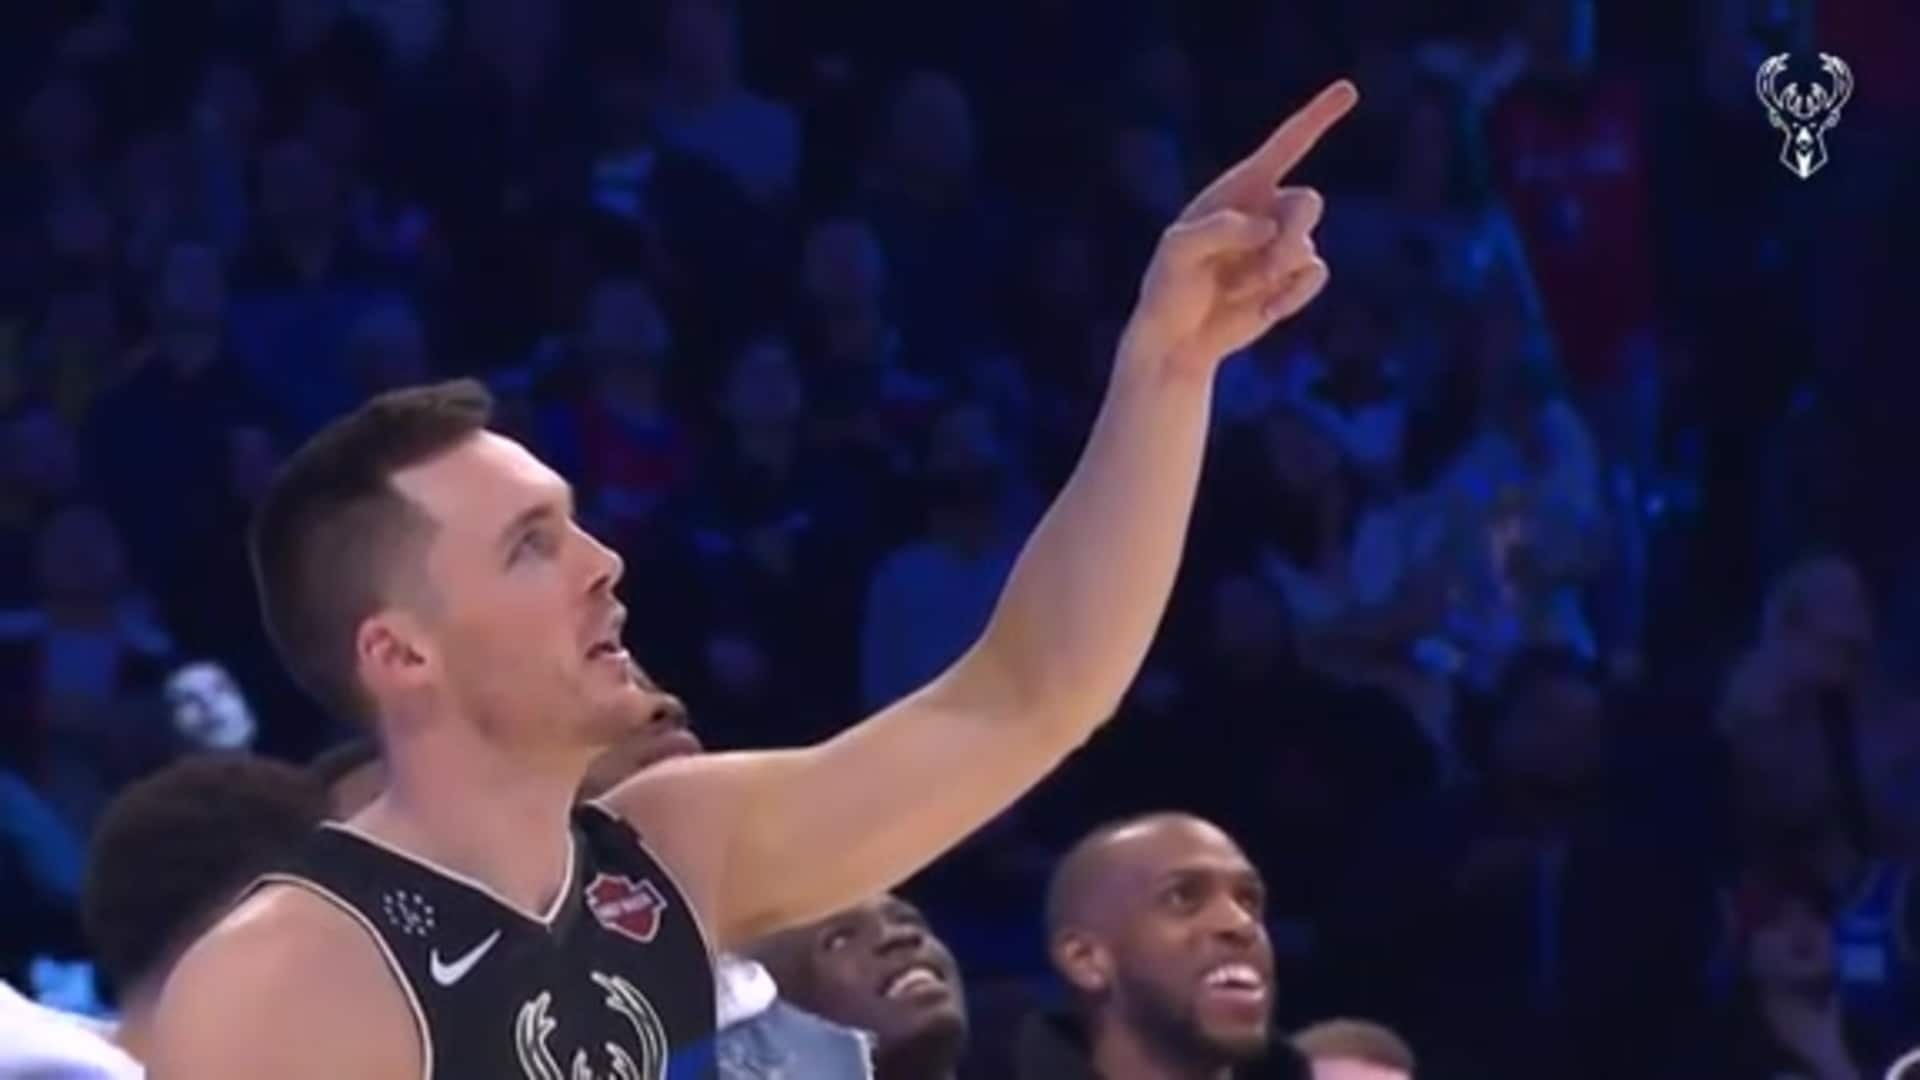 Pat Connaughton AT&T Dunk Contest Performance | 2.15.20